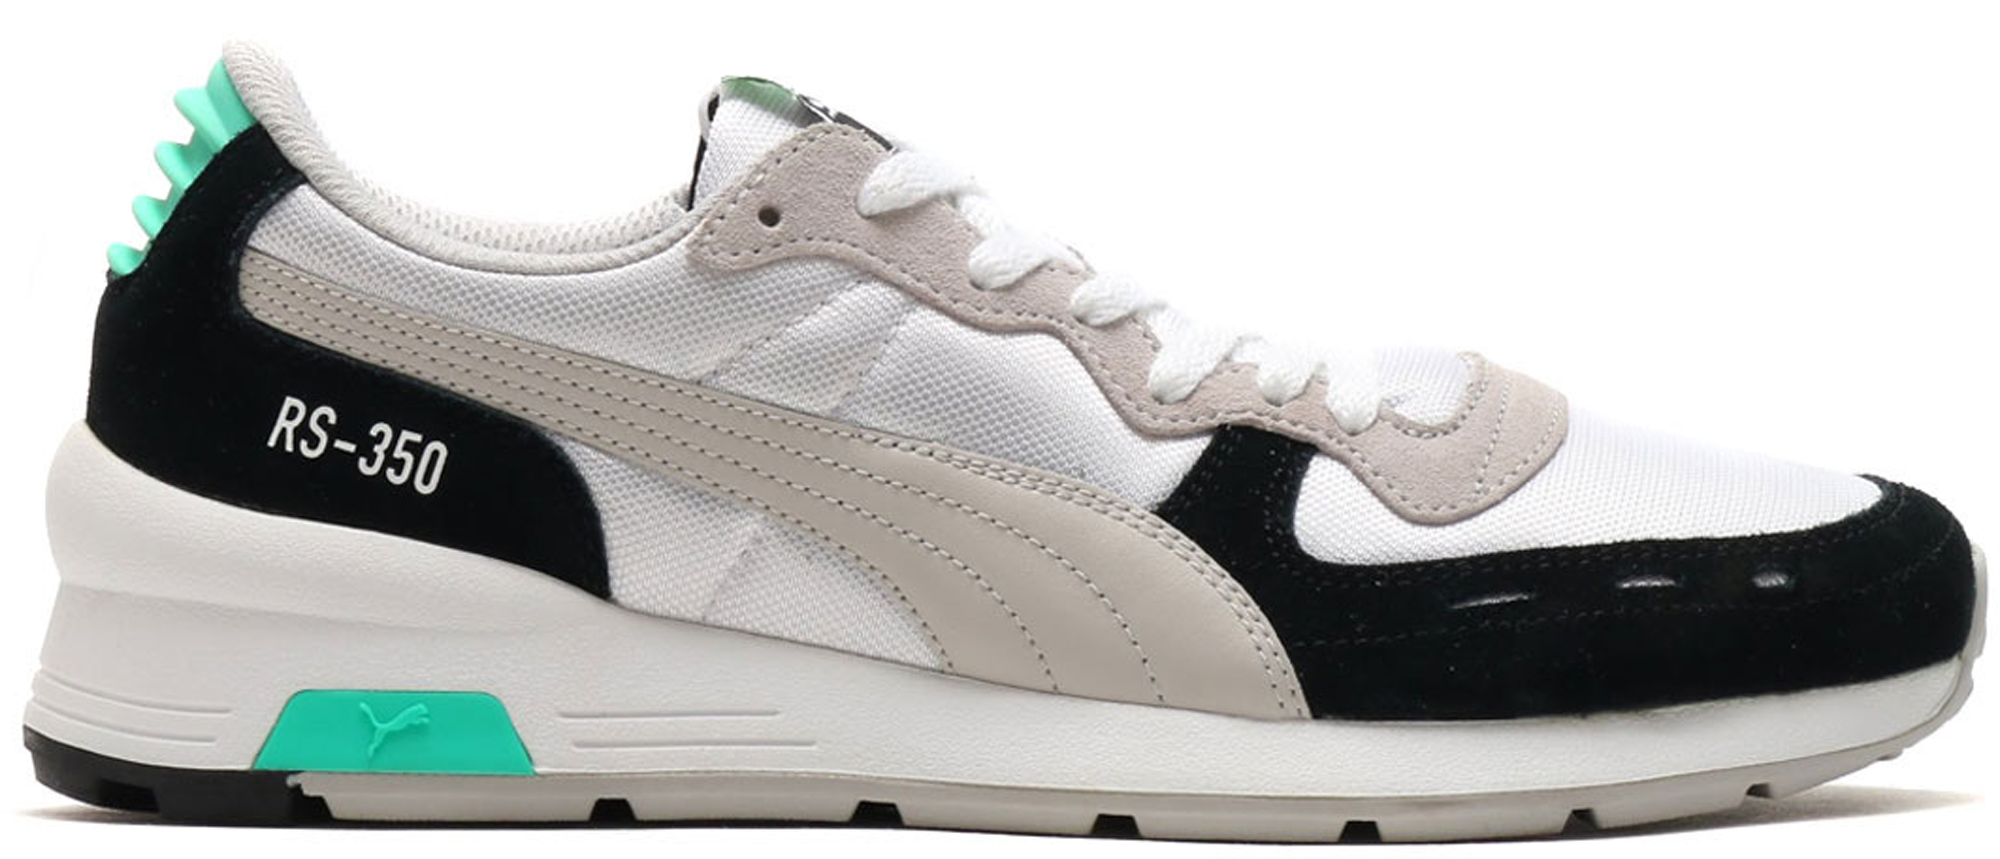 Puma RS-350 Re-Invention White Green